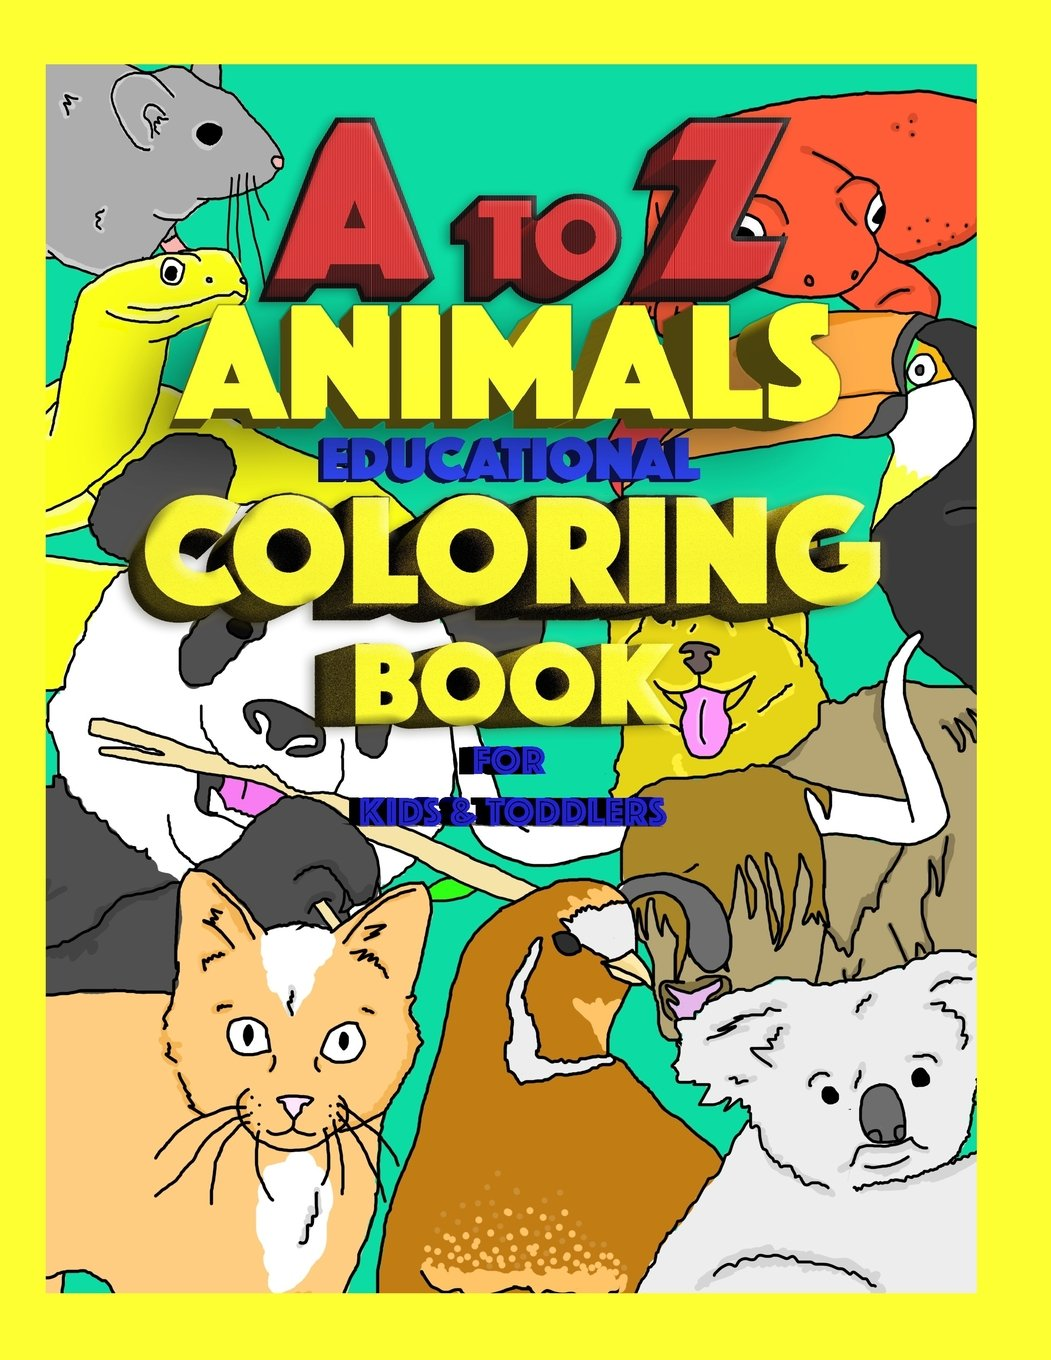 Download A to Z Animals - Educational Coloring Book for Kids & Toddlers: Children Activity Books for Kids Ages 2-4, 4-8, Boys, Girls, Fun Early Learning pdf epub